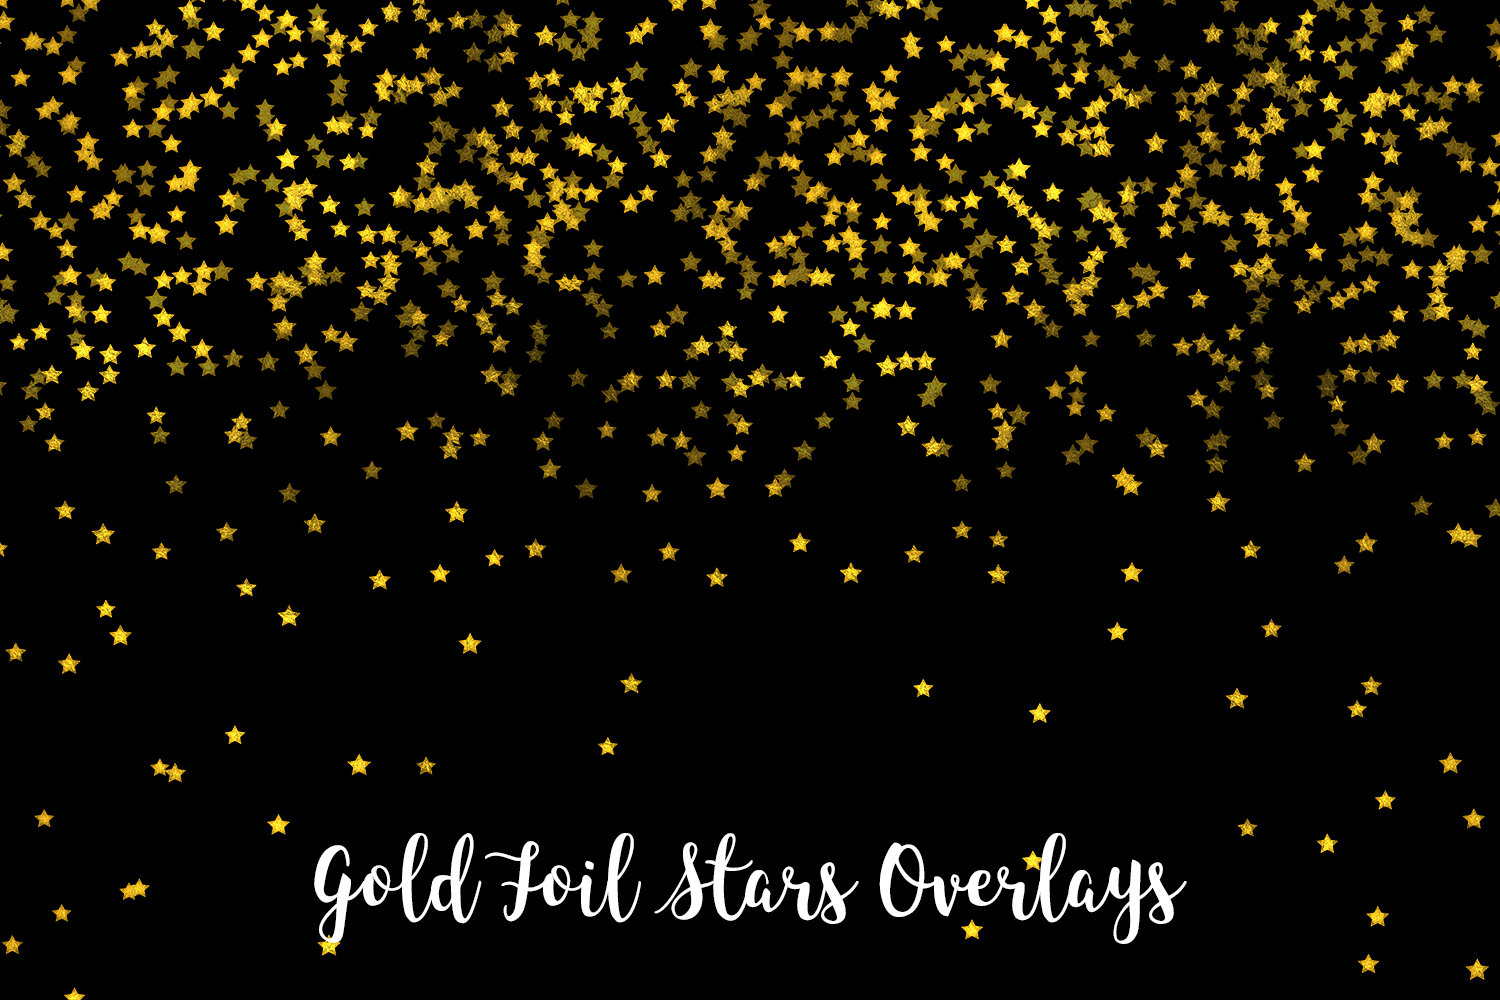 Gold Foil Stars Overlays, Gold Stars Confetti example image 4